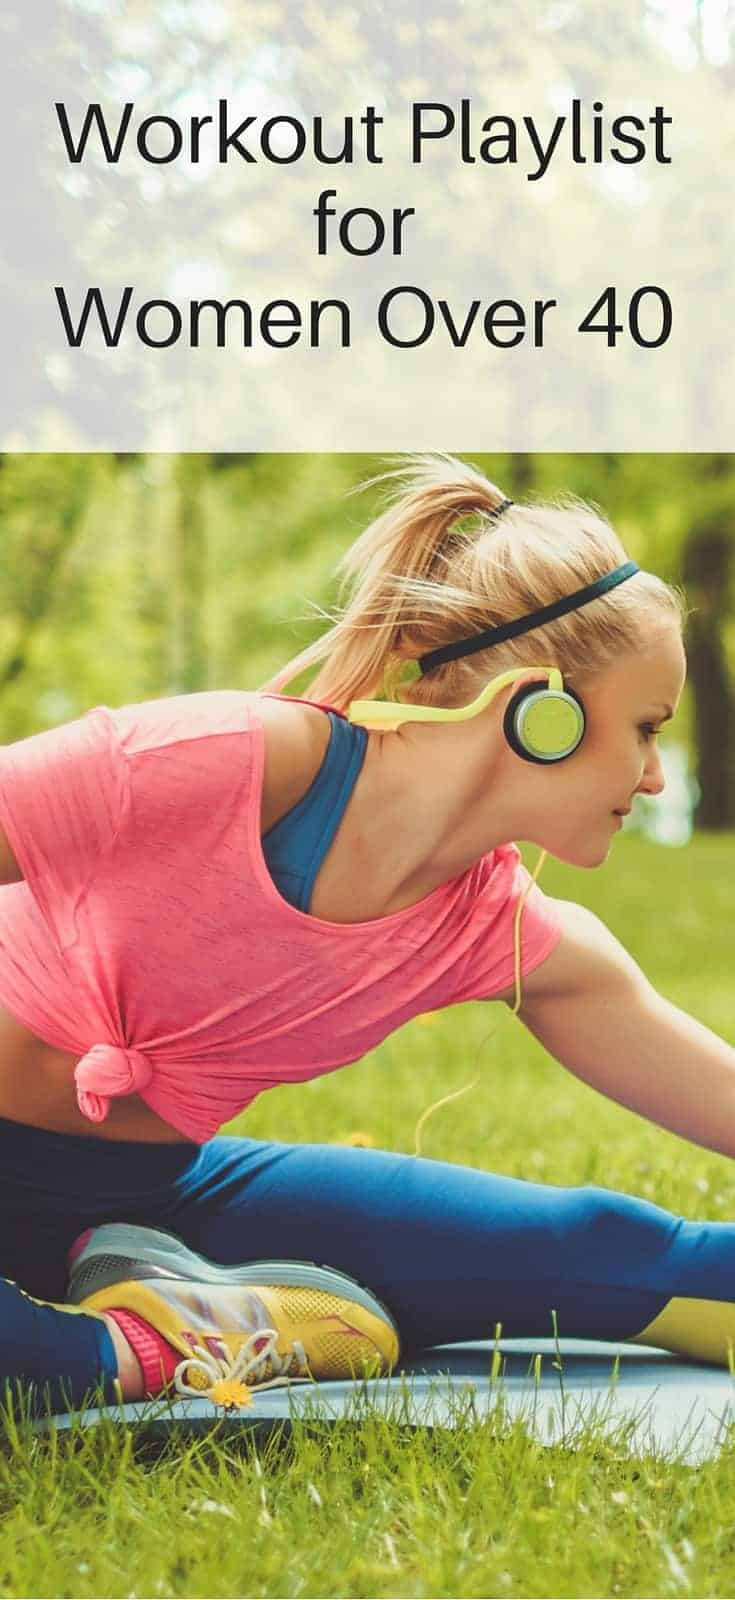 Workout playlist with women over 40 in mind! The songs you grew up with to push you work harder!